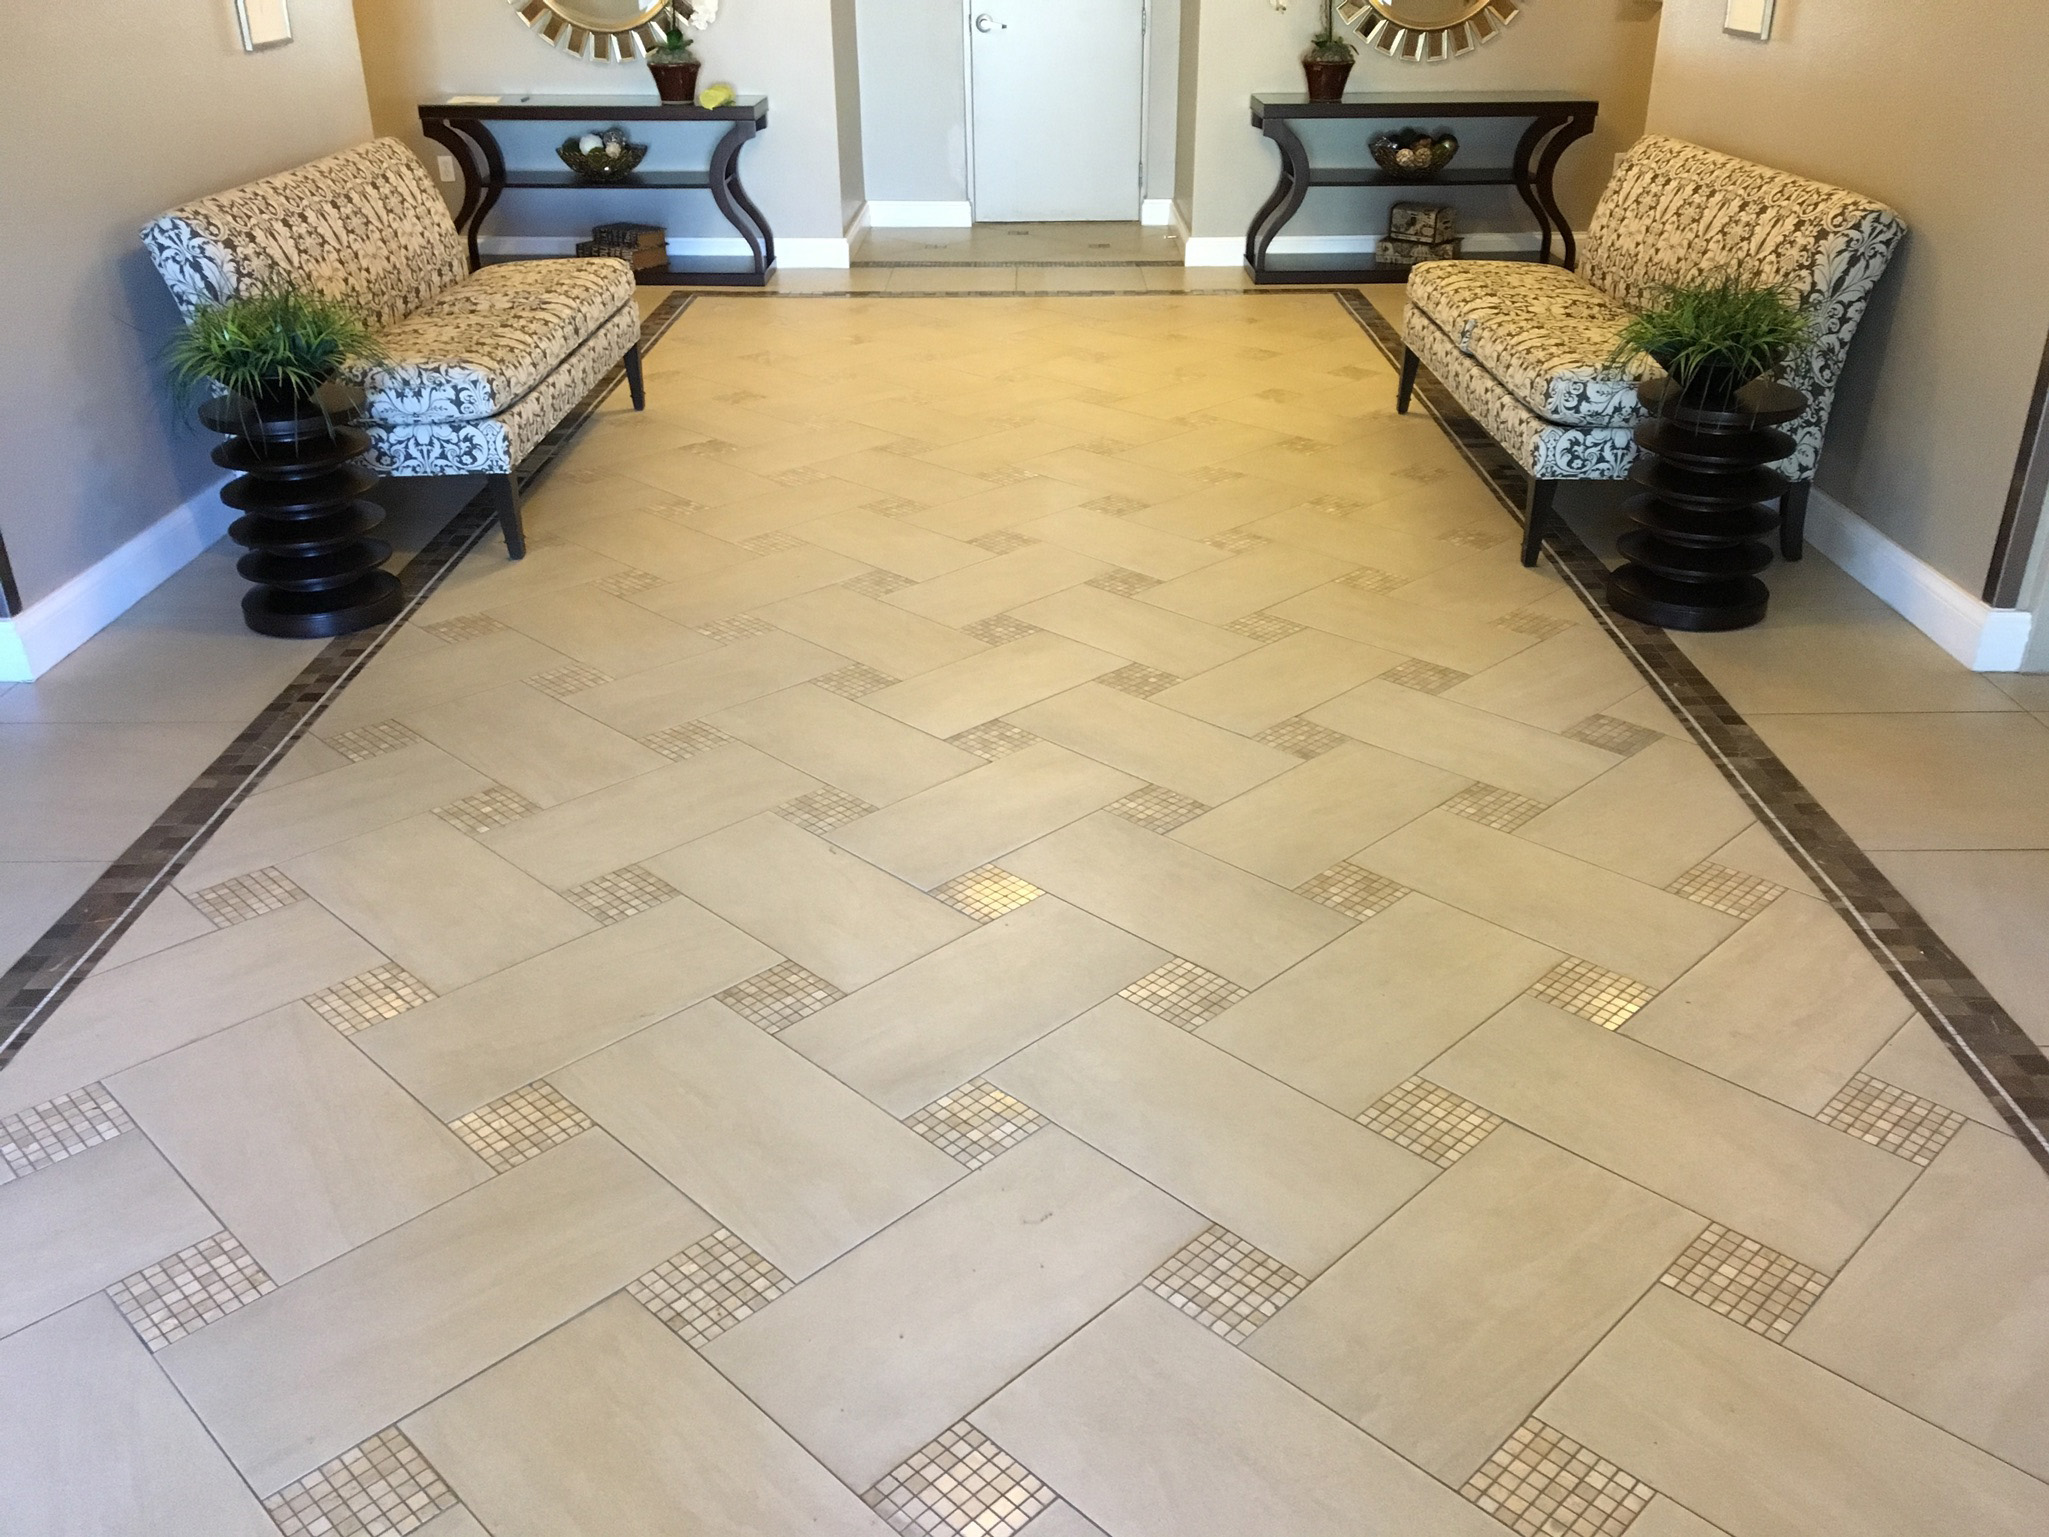 TRADE PROFESSIONALS - It serves as a guideline for architects, interior designers, facility managers, builders and homeowners in which to evaluate the proficiency, expertise, skill and knowledge of tile installation contractors they consider for their projects. There are approximately 1300 people nationwide that have achieved the distinction of CTI, Certified Tile Installer.